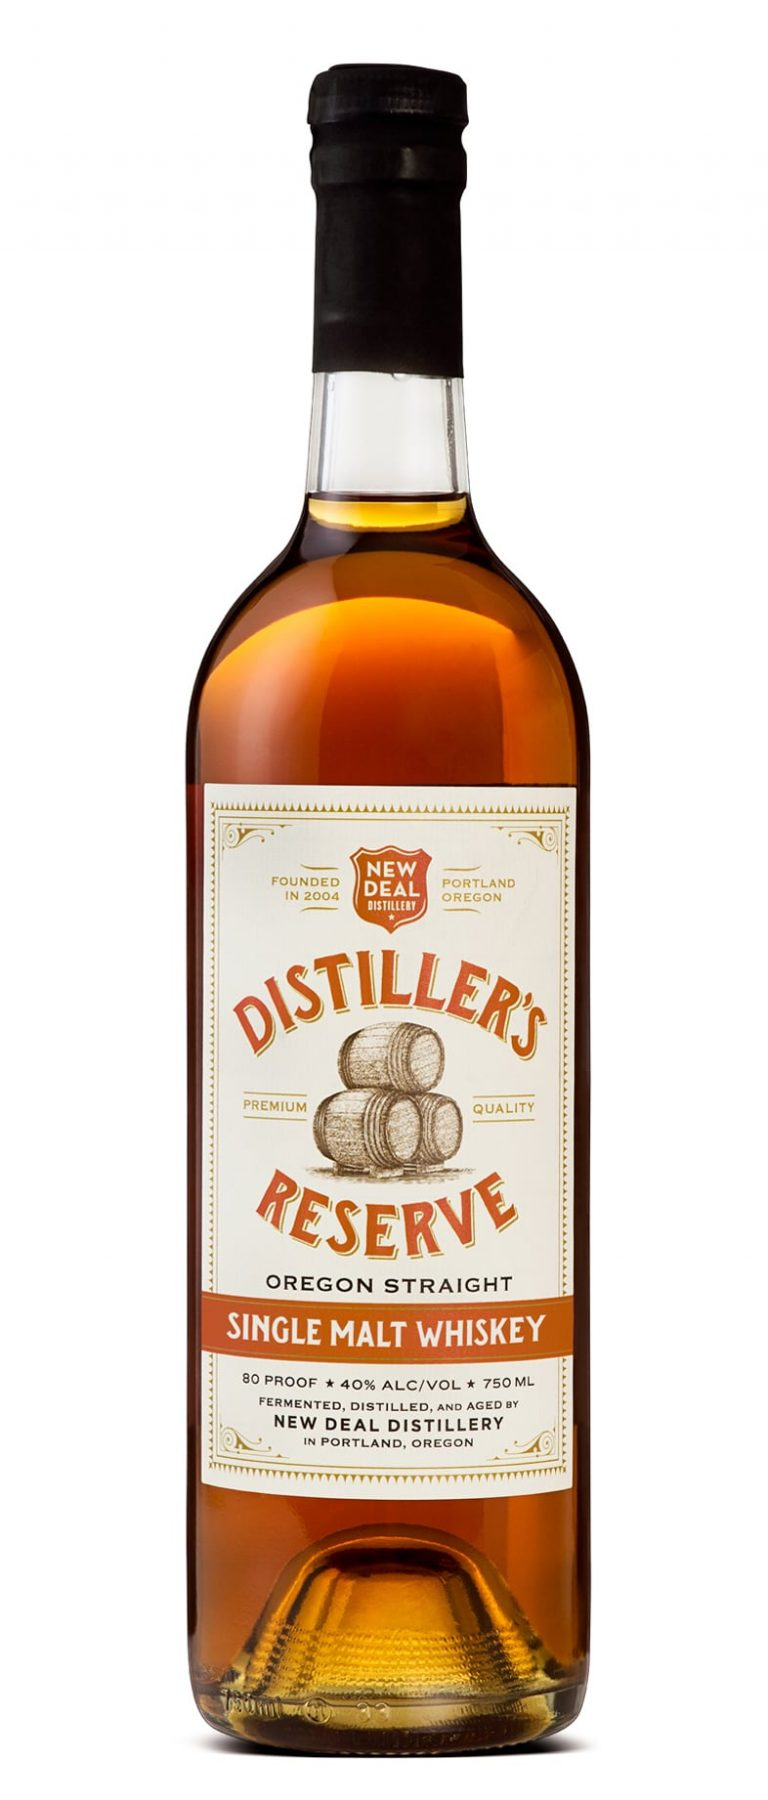 New Deal Distiller's Reserve Single Malt Whiskey